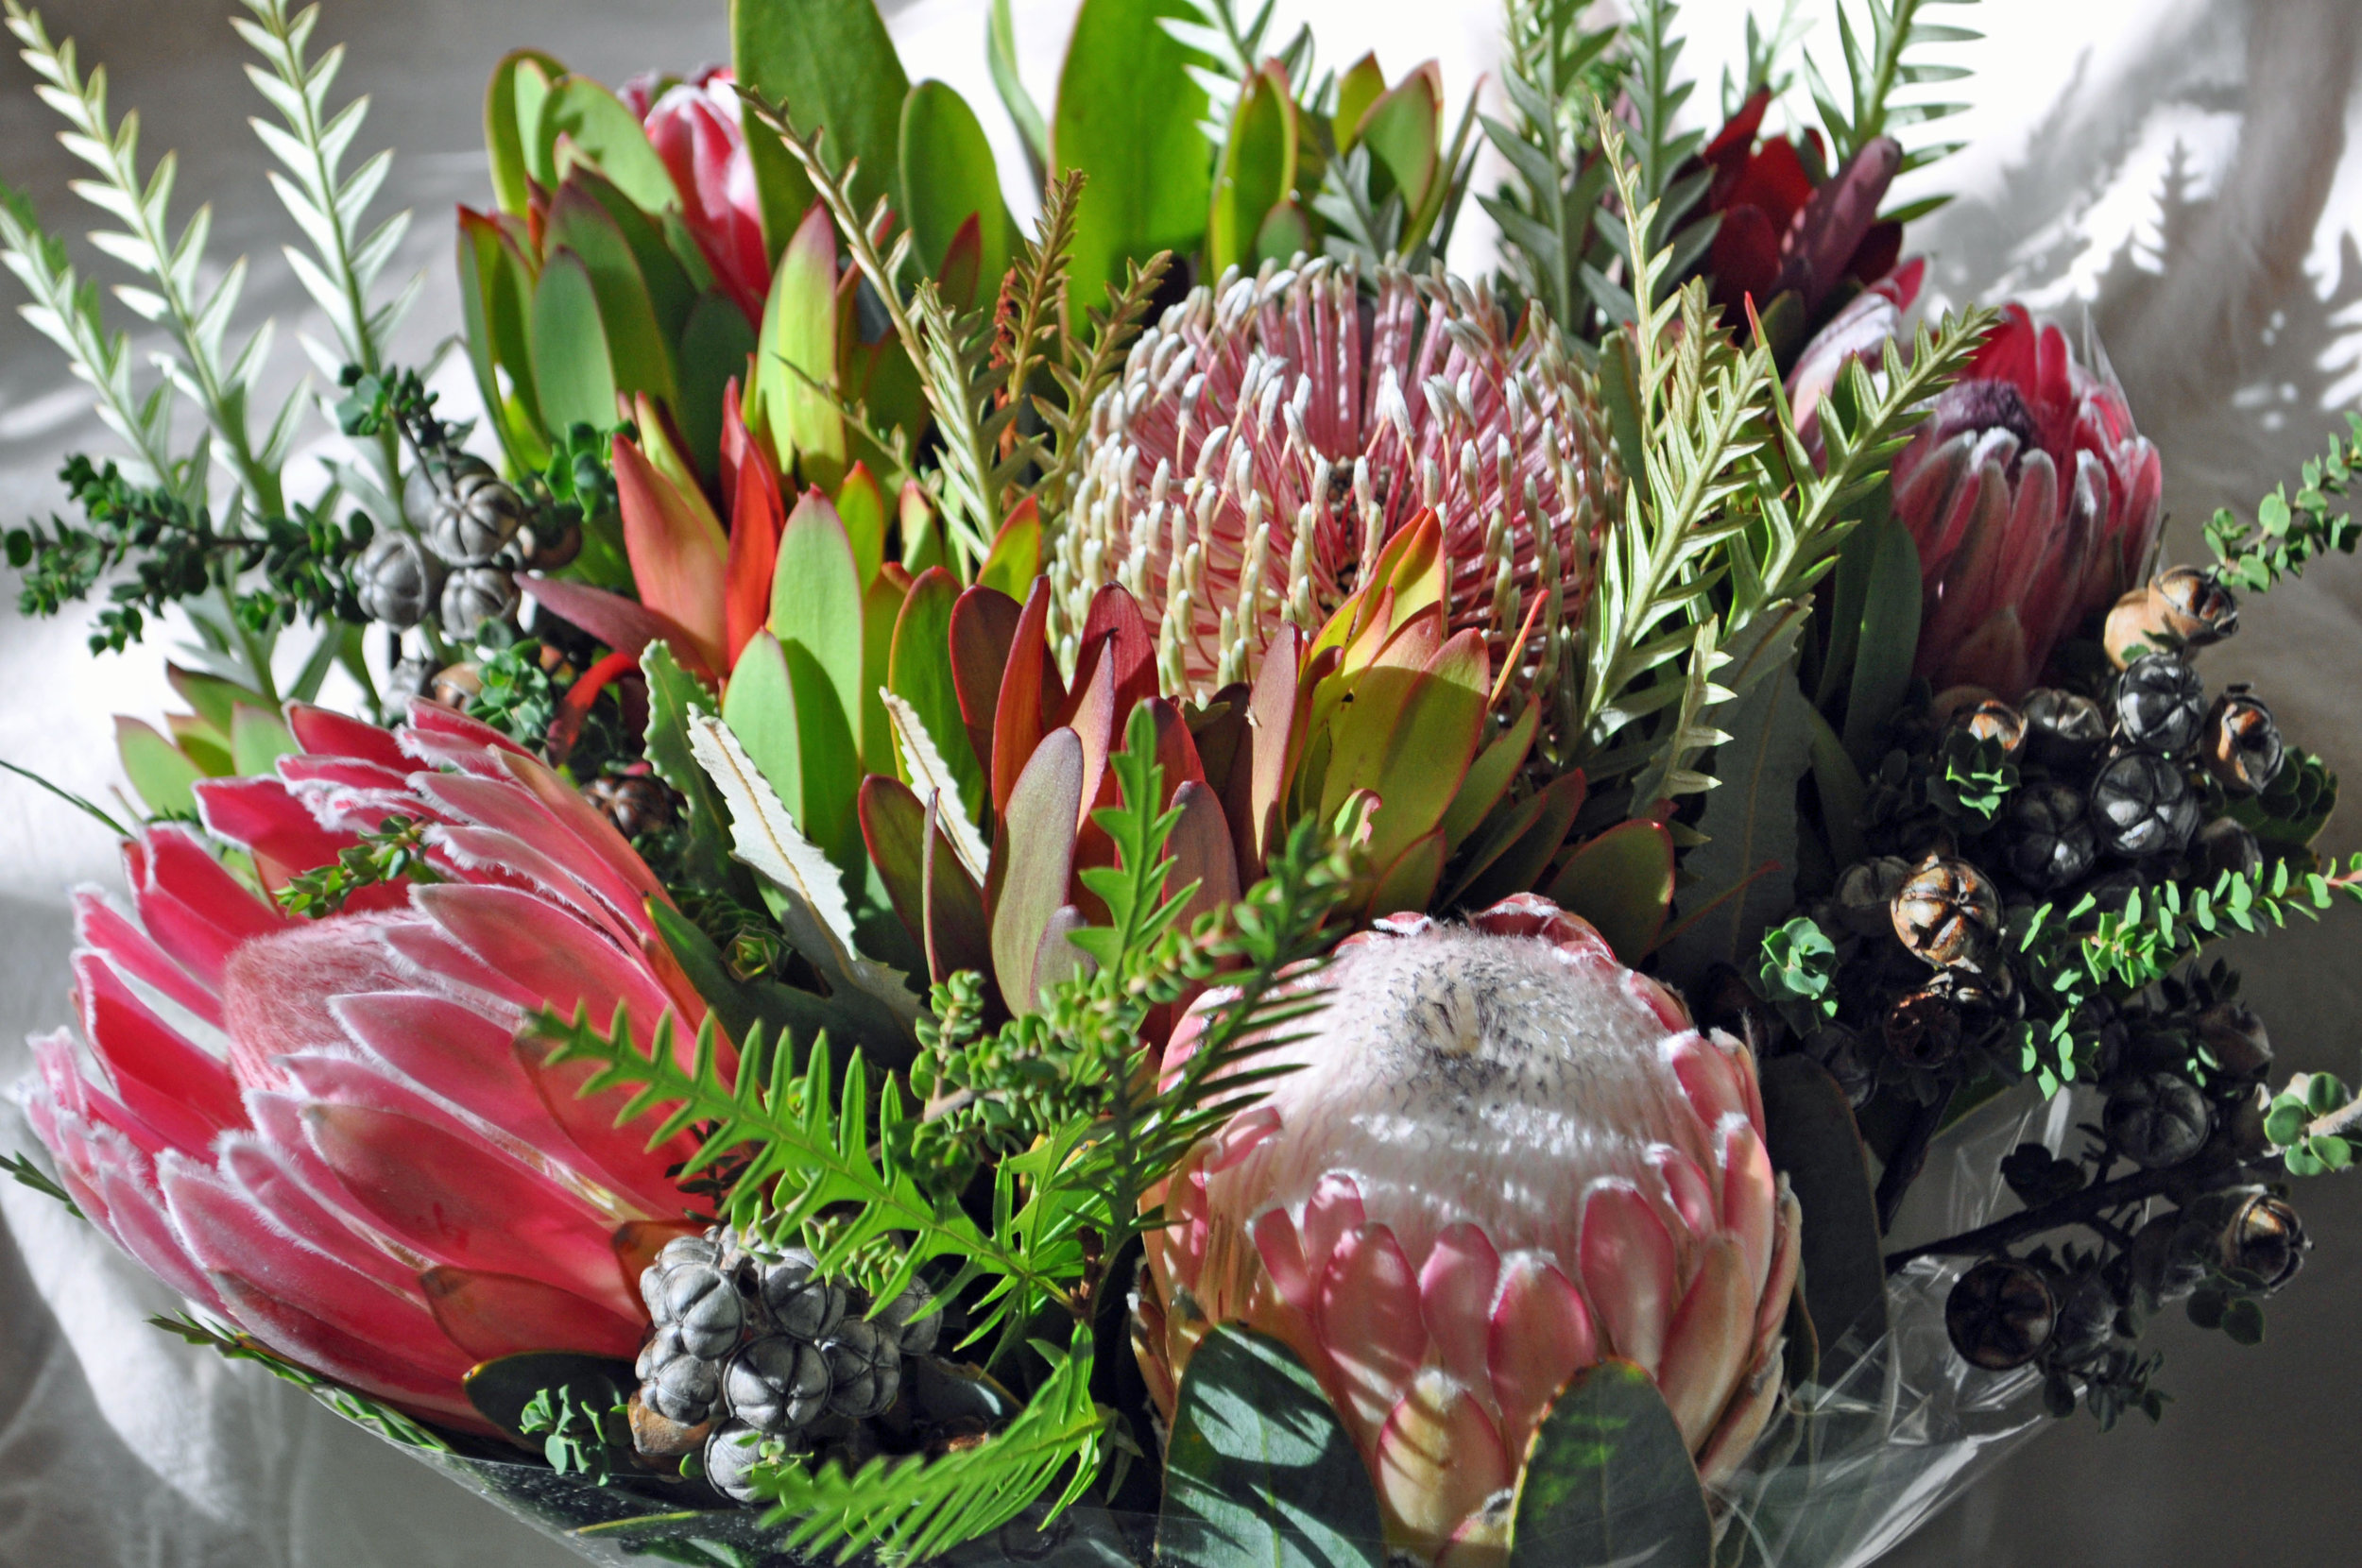 Protea Premium Package $975 plus tax - This premium package is for doula care, a 4-week Hospital Birth Preparation Series and a Postpartum 101 For Moms Class.Doula care includes a free Initial consultation in order for you to get to know me and the support I offer, meeting with you for 2 in-home appointments to go over birth planning, relaxation techniques and I am also able to show you how to use your space in early labor, labor and birth support, stay with you at least 2 hours after birth and follow-up with a postpartum meeting in your home.The Hospital Birth Preparation Series is a comprehensive class which covers pregnancy, labor preparation, birth plans, comfort measures, understanding common interventions and testing, relaxation techniques, breastfeeding, newborn care and more! Class is designed for you and a support person and meets once a week for 4 weeks.Postpartum 101 For Moms is designed to help you get ready for baby! Putting a postpartum plan in place, healthy meal choices, newborn care, breastfeeding questions and more. Also includes a meal plan and a make and take gift for mom.This package requires a non-refundable deposit of $250 due at contract signing. Hawaii state tax will be added to total. Payment plans are available.